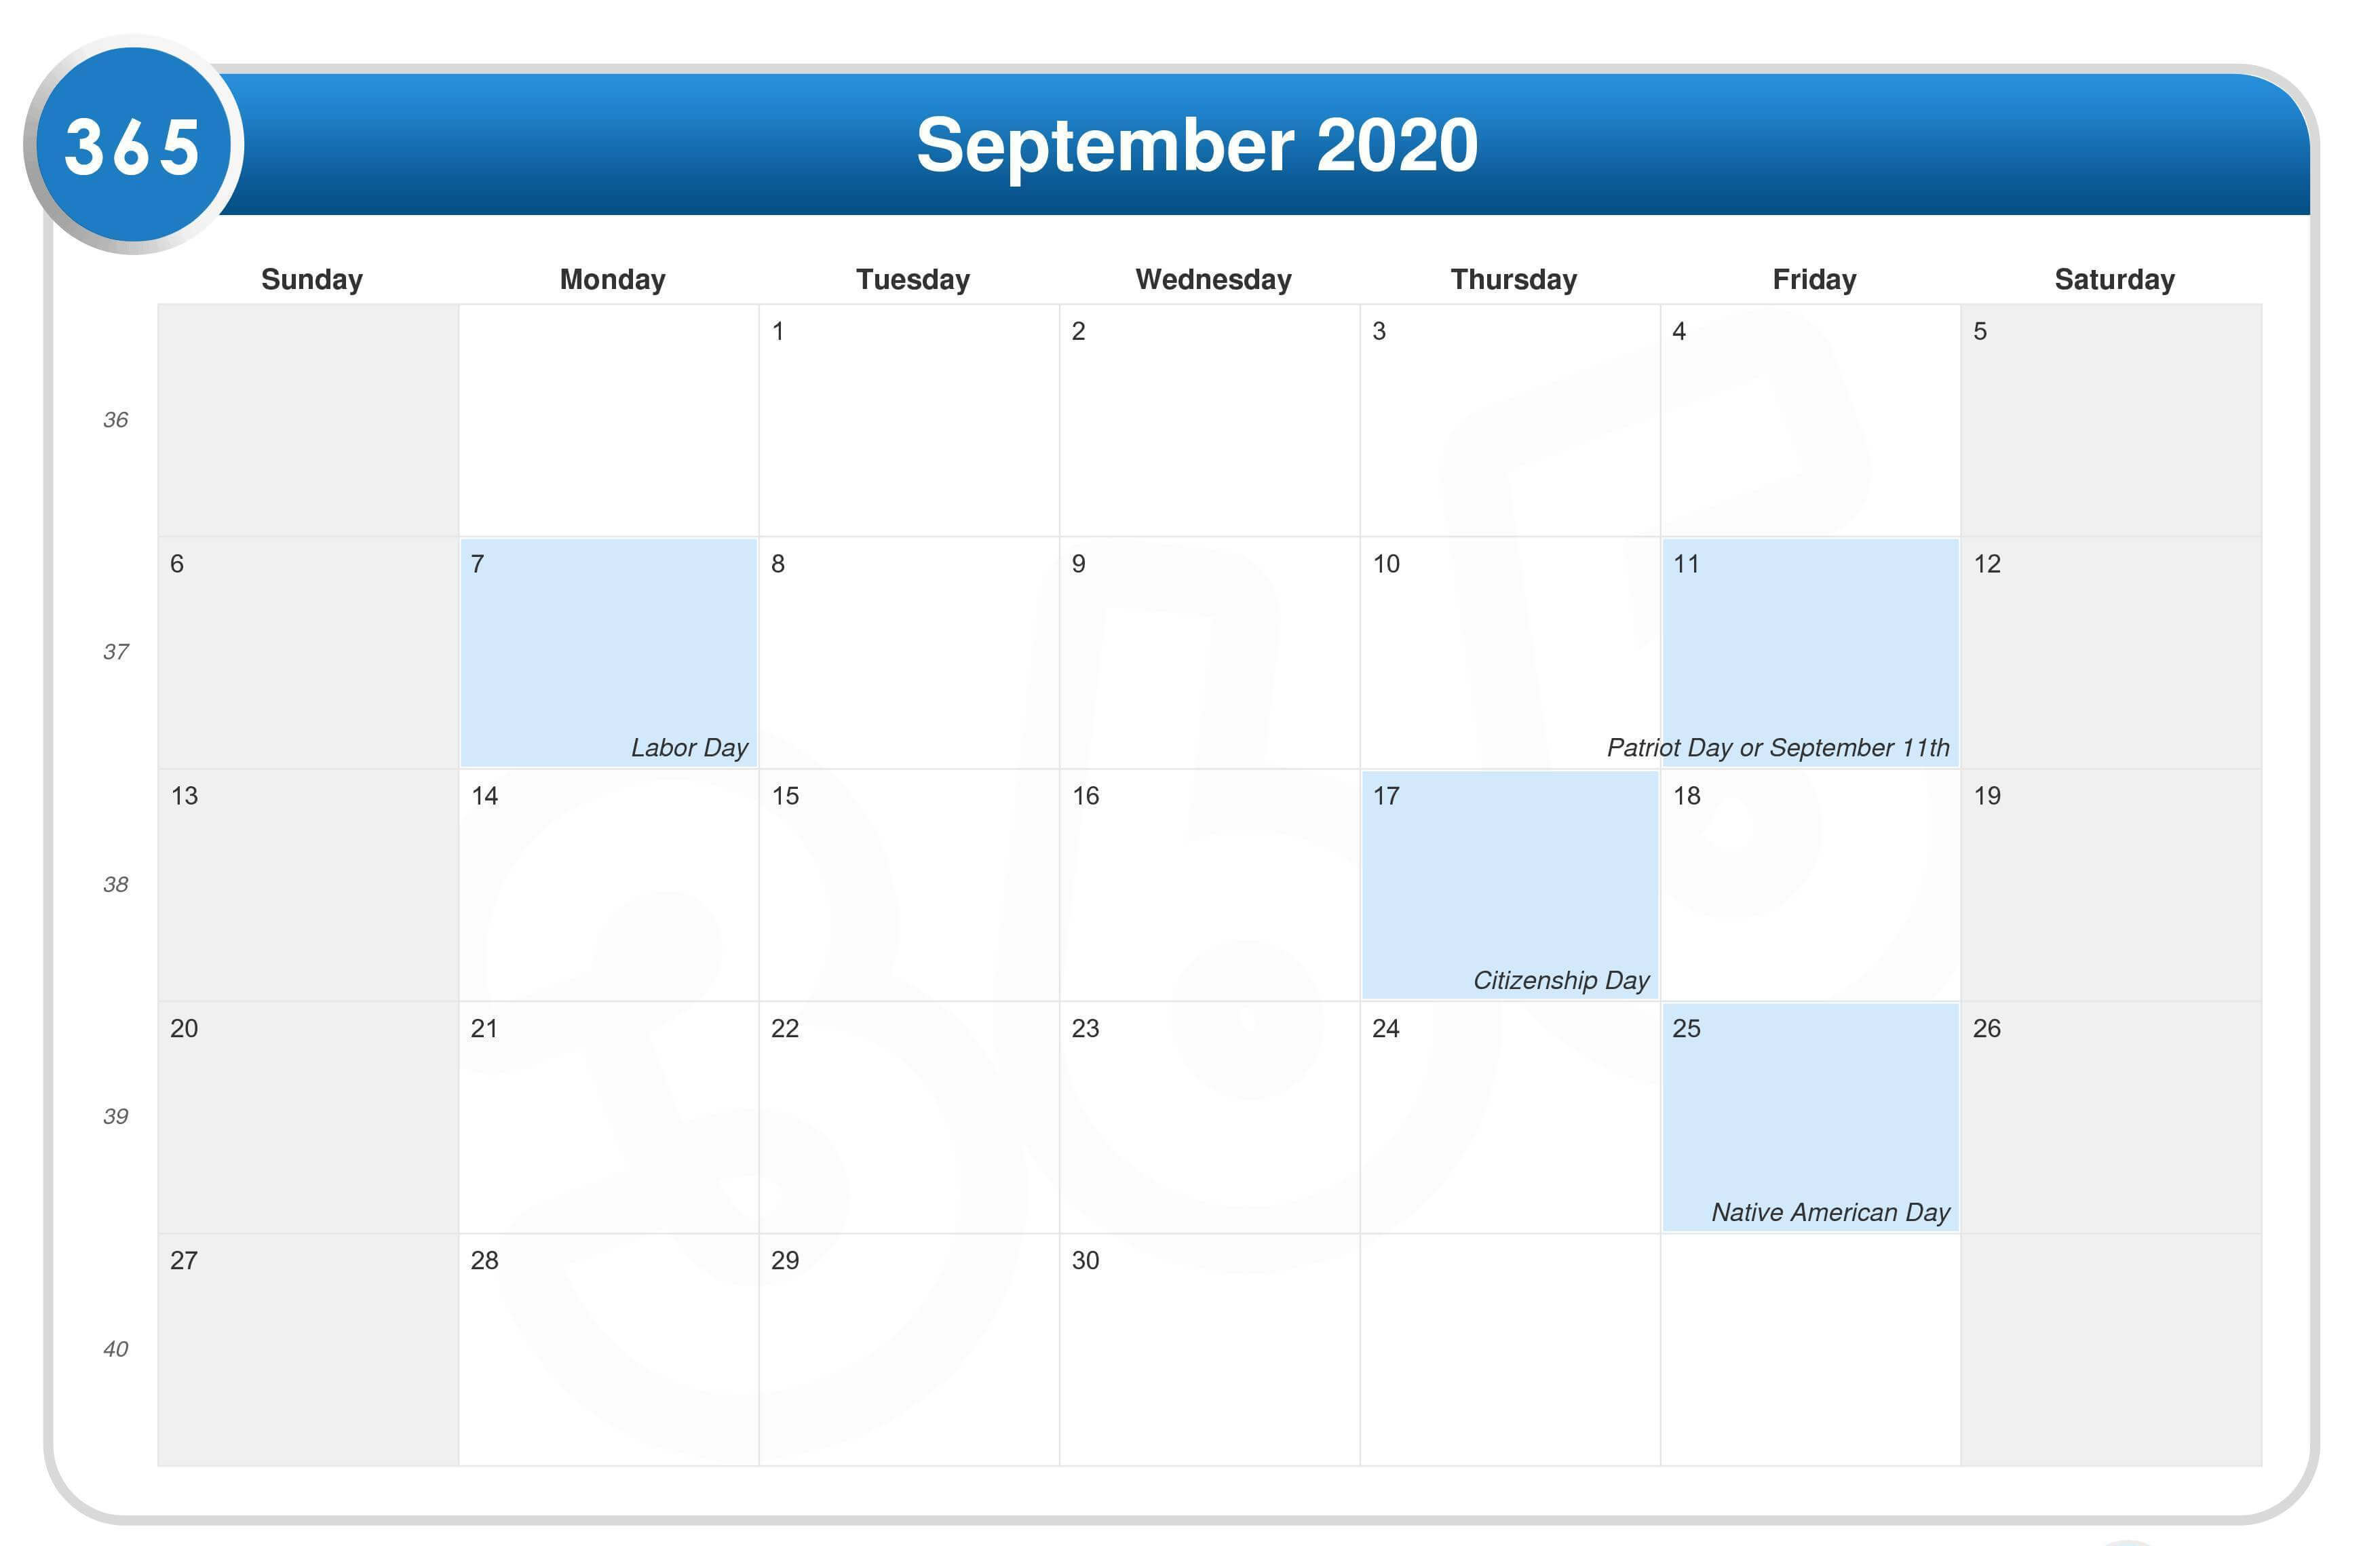 September 2020 Holidays Calendar